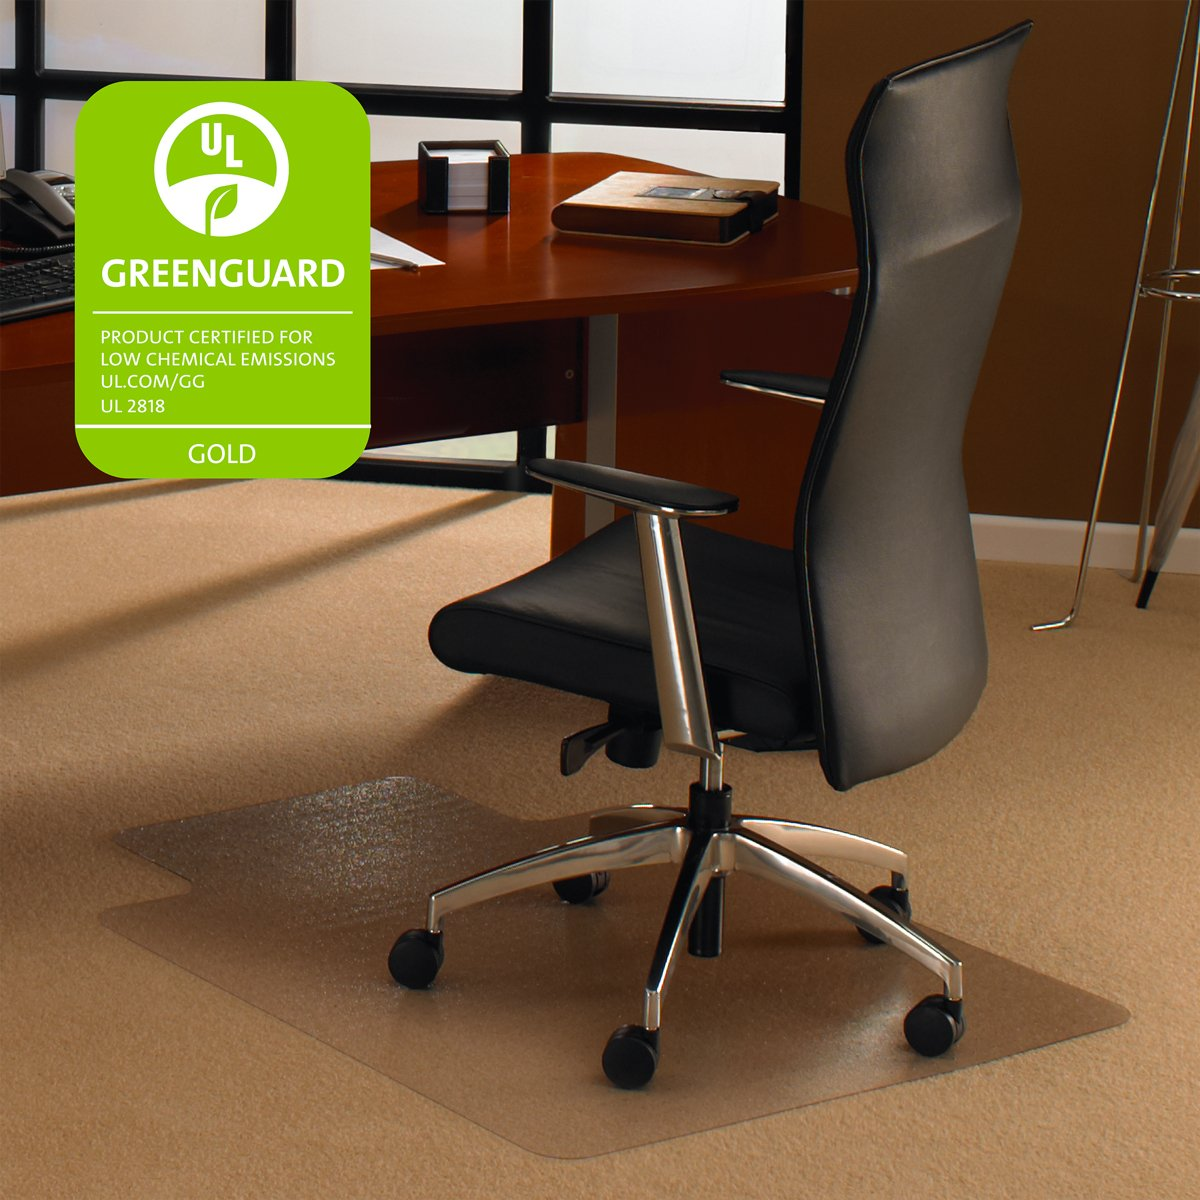 Amazon.com : Cleartex Ultimat Chair Mat, Clear Polycarbonate, For ...